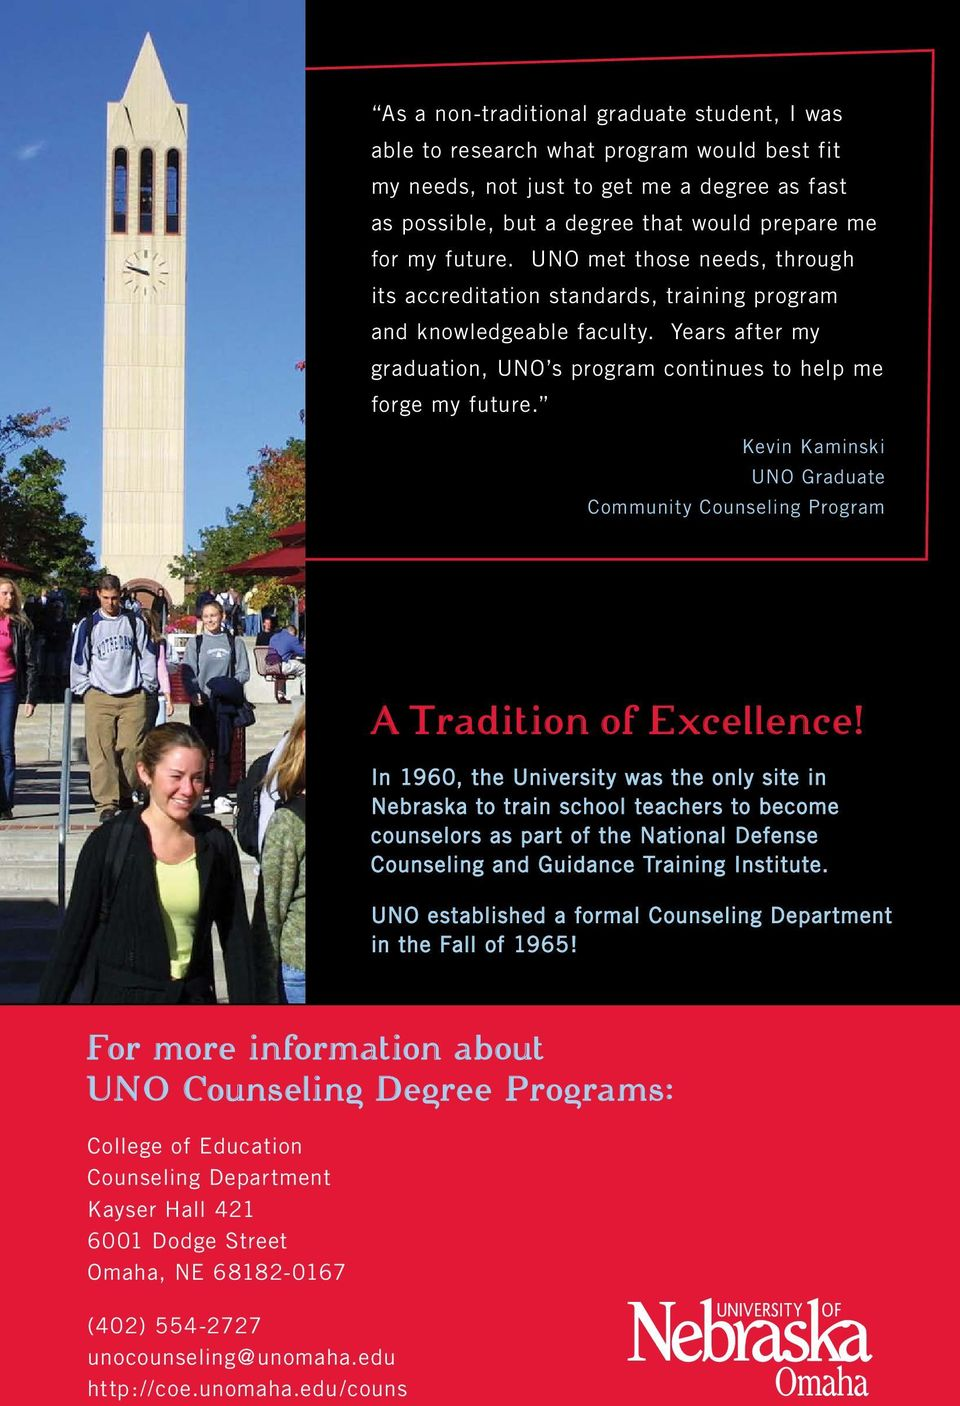 Kevin Kaminski UNO Graduate Community Counseling Program A Tradition of Excellence!